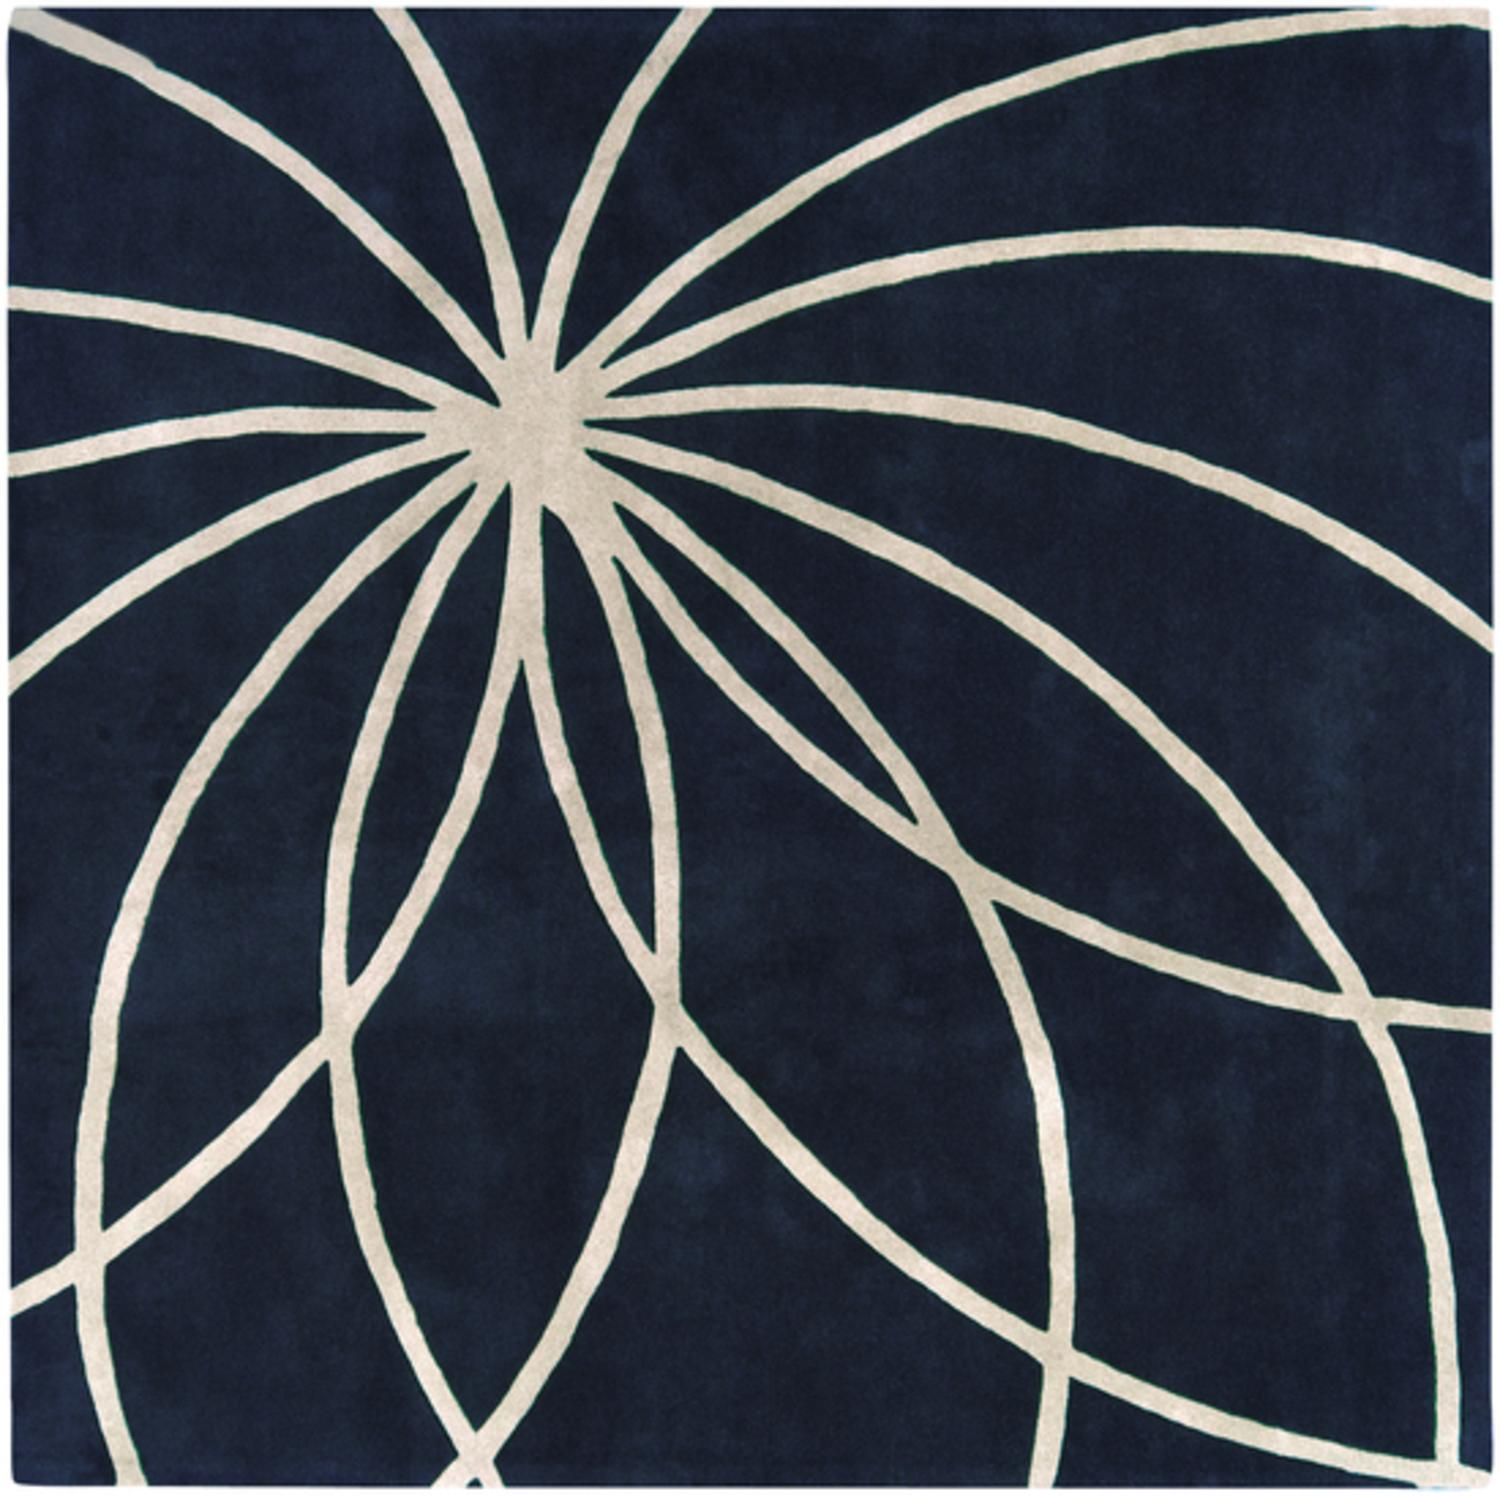 6' x 6' Plasma Elektra Antique White & Dark Blue Hand Woven Square Wool Area Rug